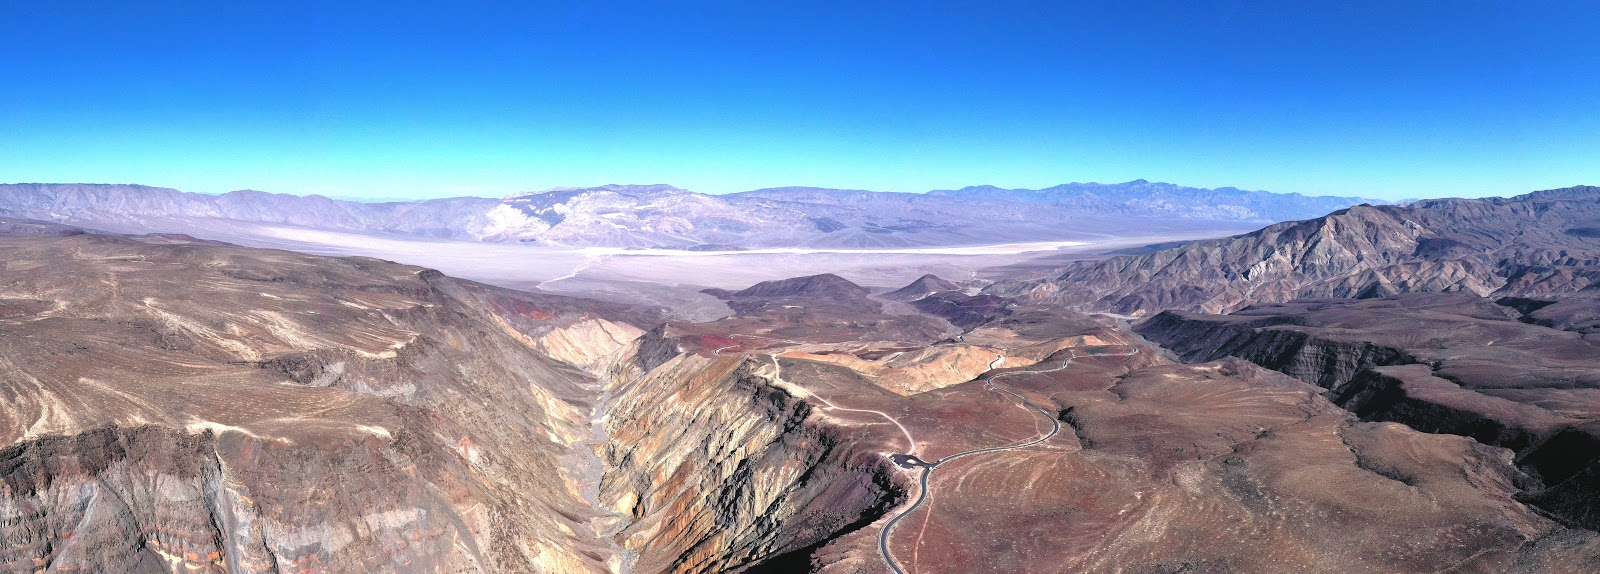 Cycling Panamint Grade - drone photo of father crowley overlook and colorful mountains